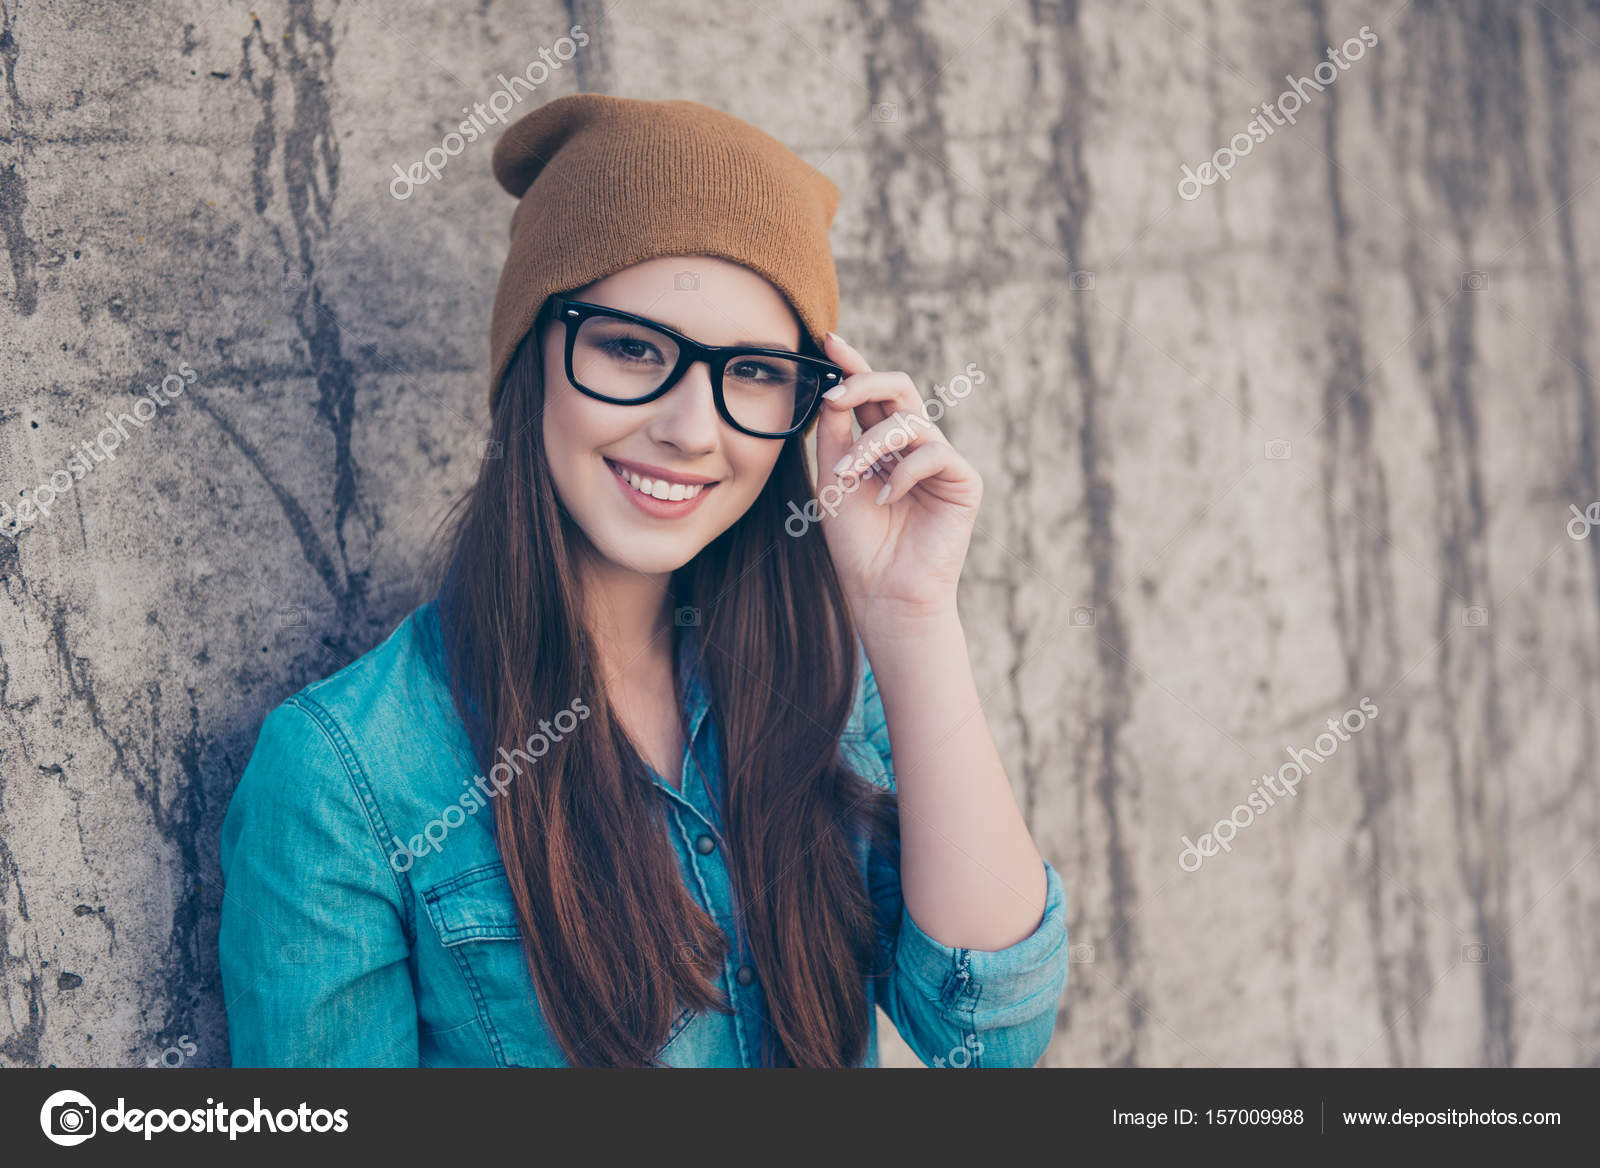 Good Morning Close Up Of Attractive Girl Standing Near Concret Stock Photo C Deagreez1 157009988